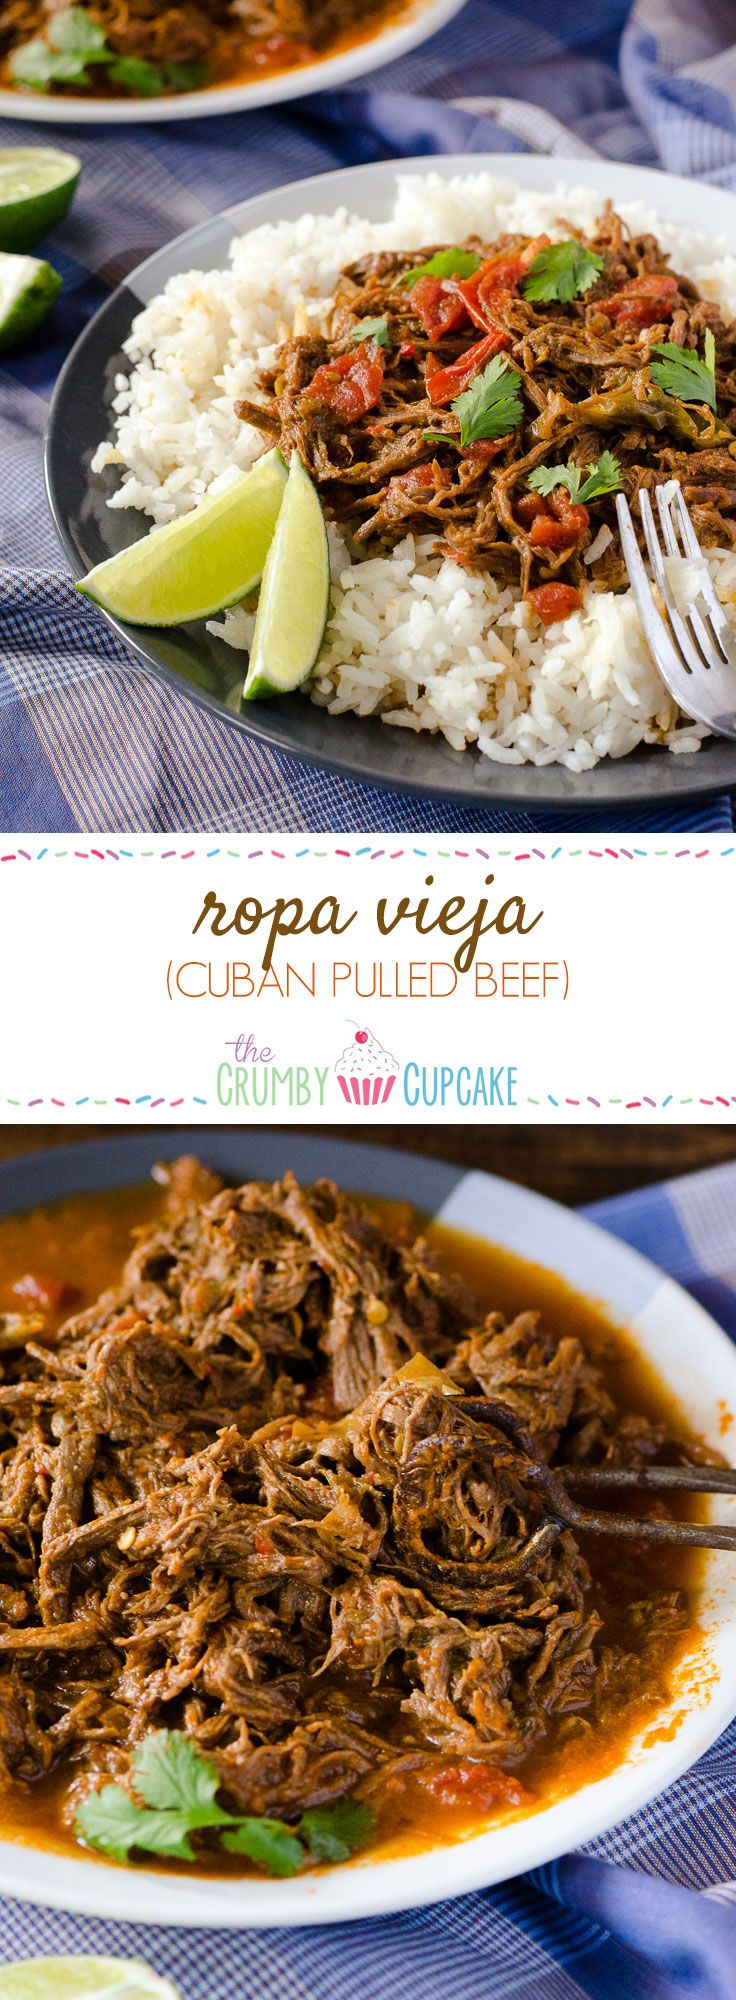 Spanish for 'old clothes' thanks to its shredded appearance, this flavorful Cuban dish is made with lean beef and makes for a healthy Sunday Supper. #SundaySupper @beeffordinner